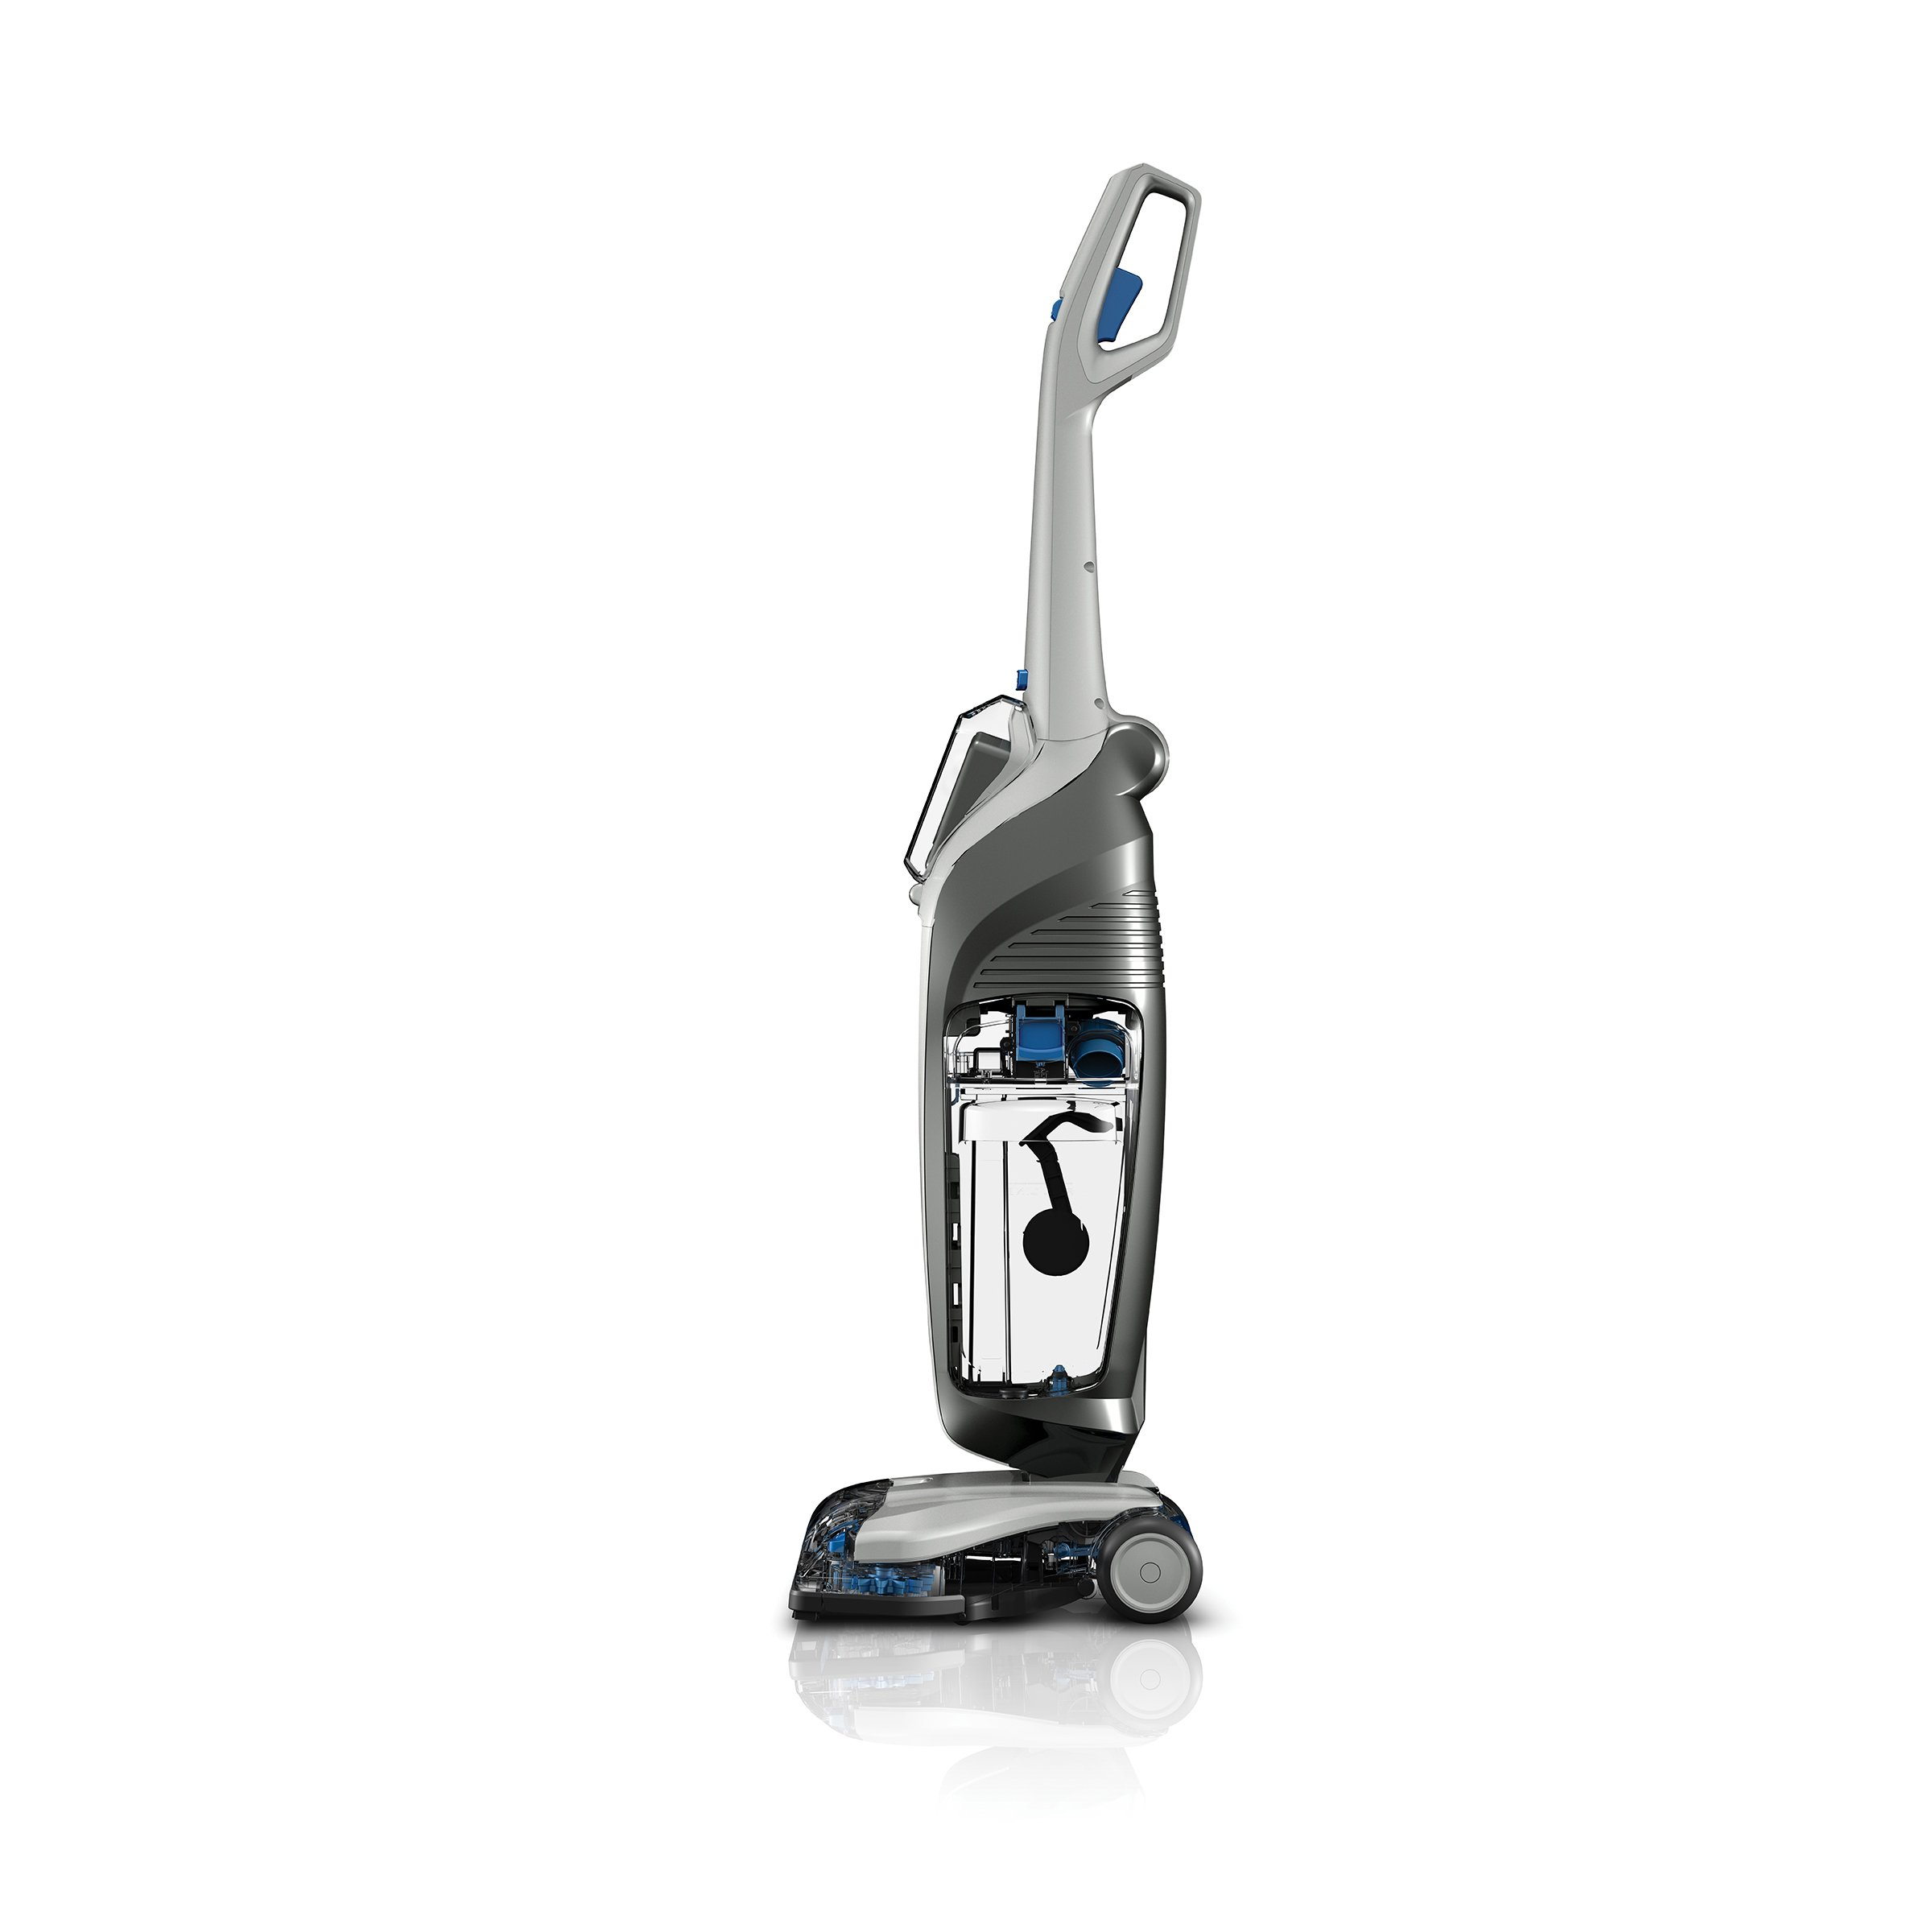 Hoover FloorMate Cordless Hard Floor Cleaner, BH55100PC by Hoover (Image #3)